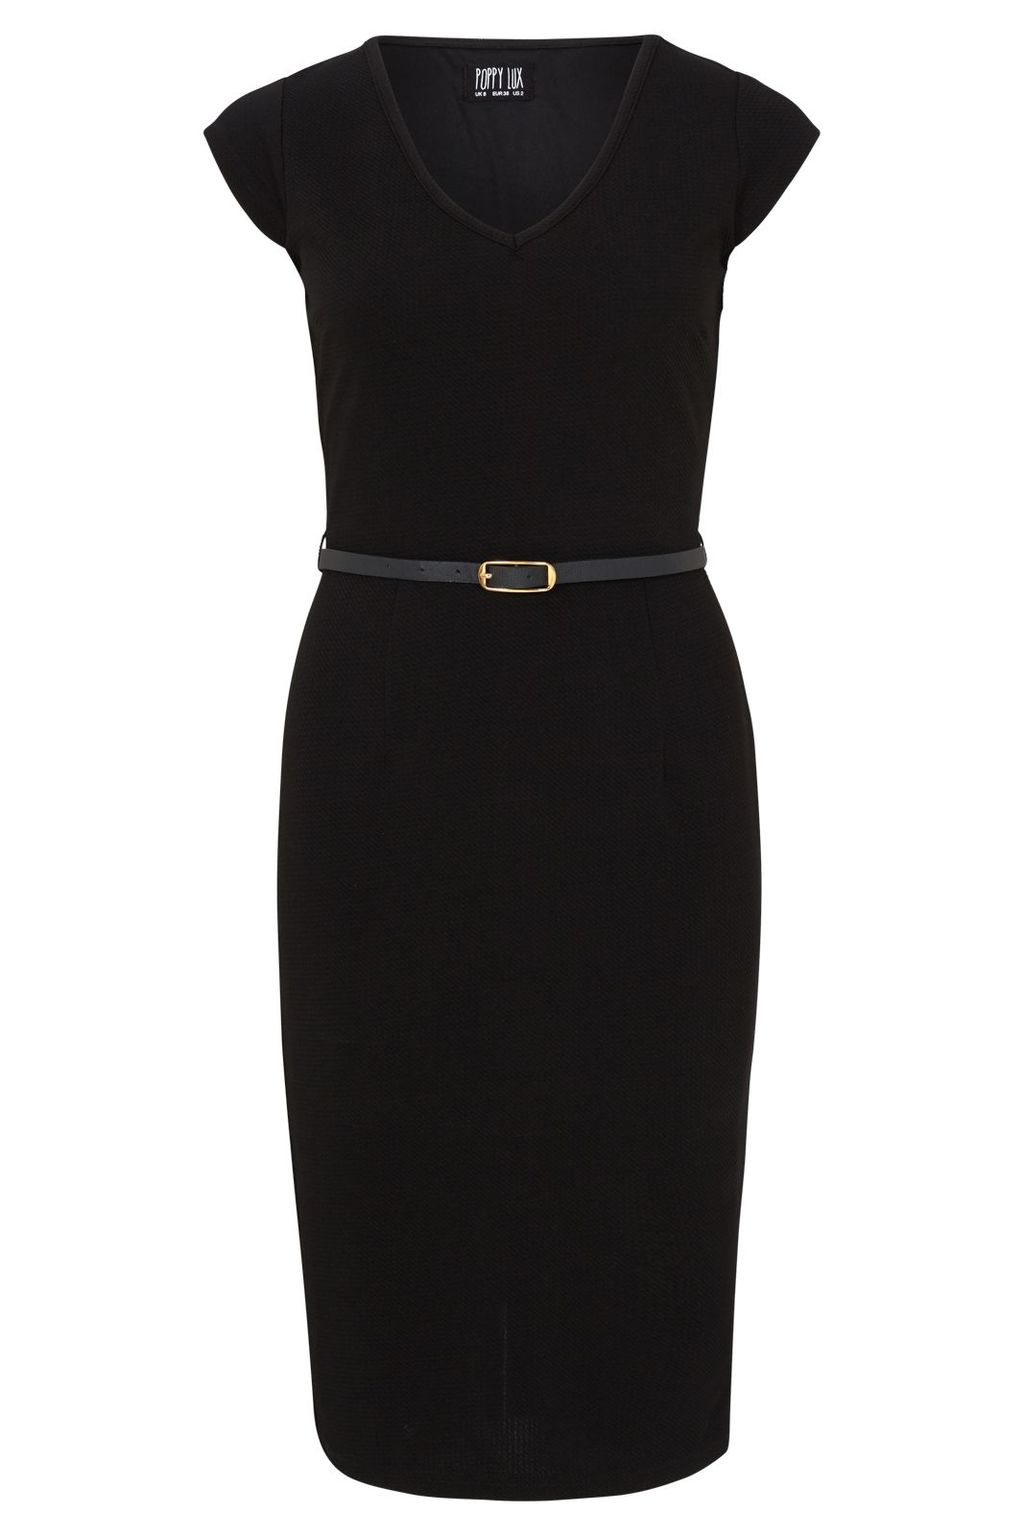 Kirsty Dress, Black - style: shift; neckline: v-neck; sleeve style: capped; fit: tight; pattern: plain; waist detail: belted waist/tie at waist/drawstring; predominant colour: black; occasions: evening, work; length: on the knee; fibres: polyester/polyamide - stretch; sleeve length: short sleeve; pattern type: fabric; texture group: other - light to midweight; season: s/s 2016; wardrobe: investment